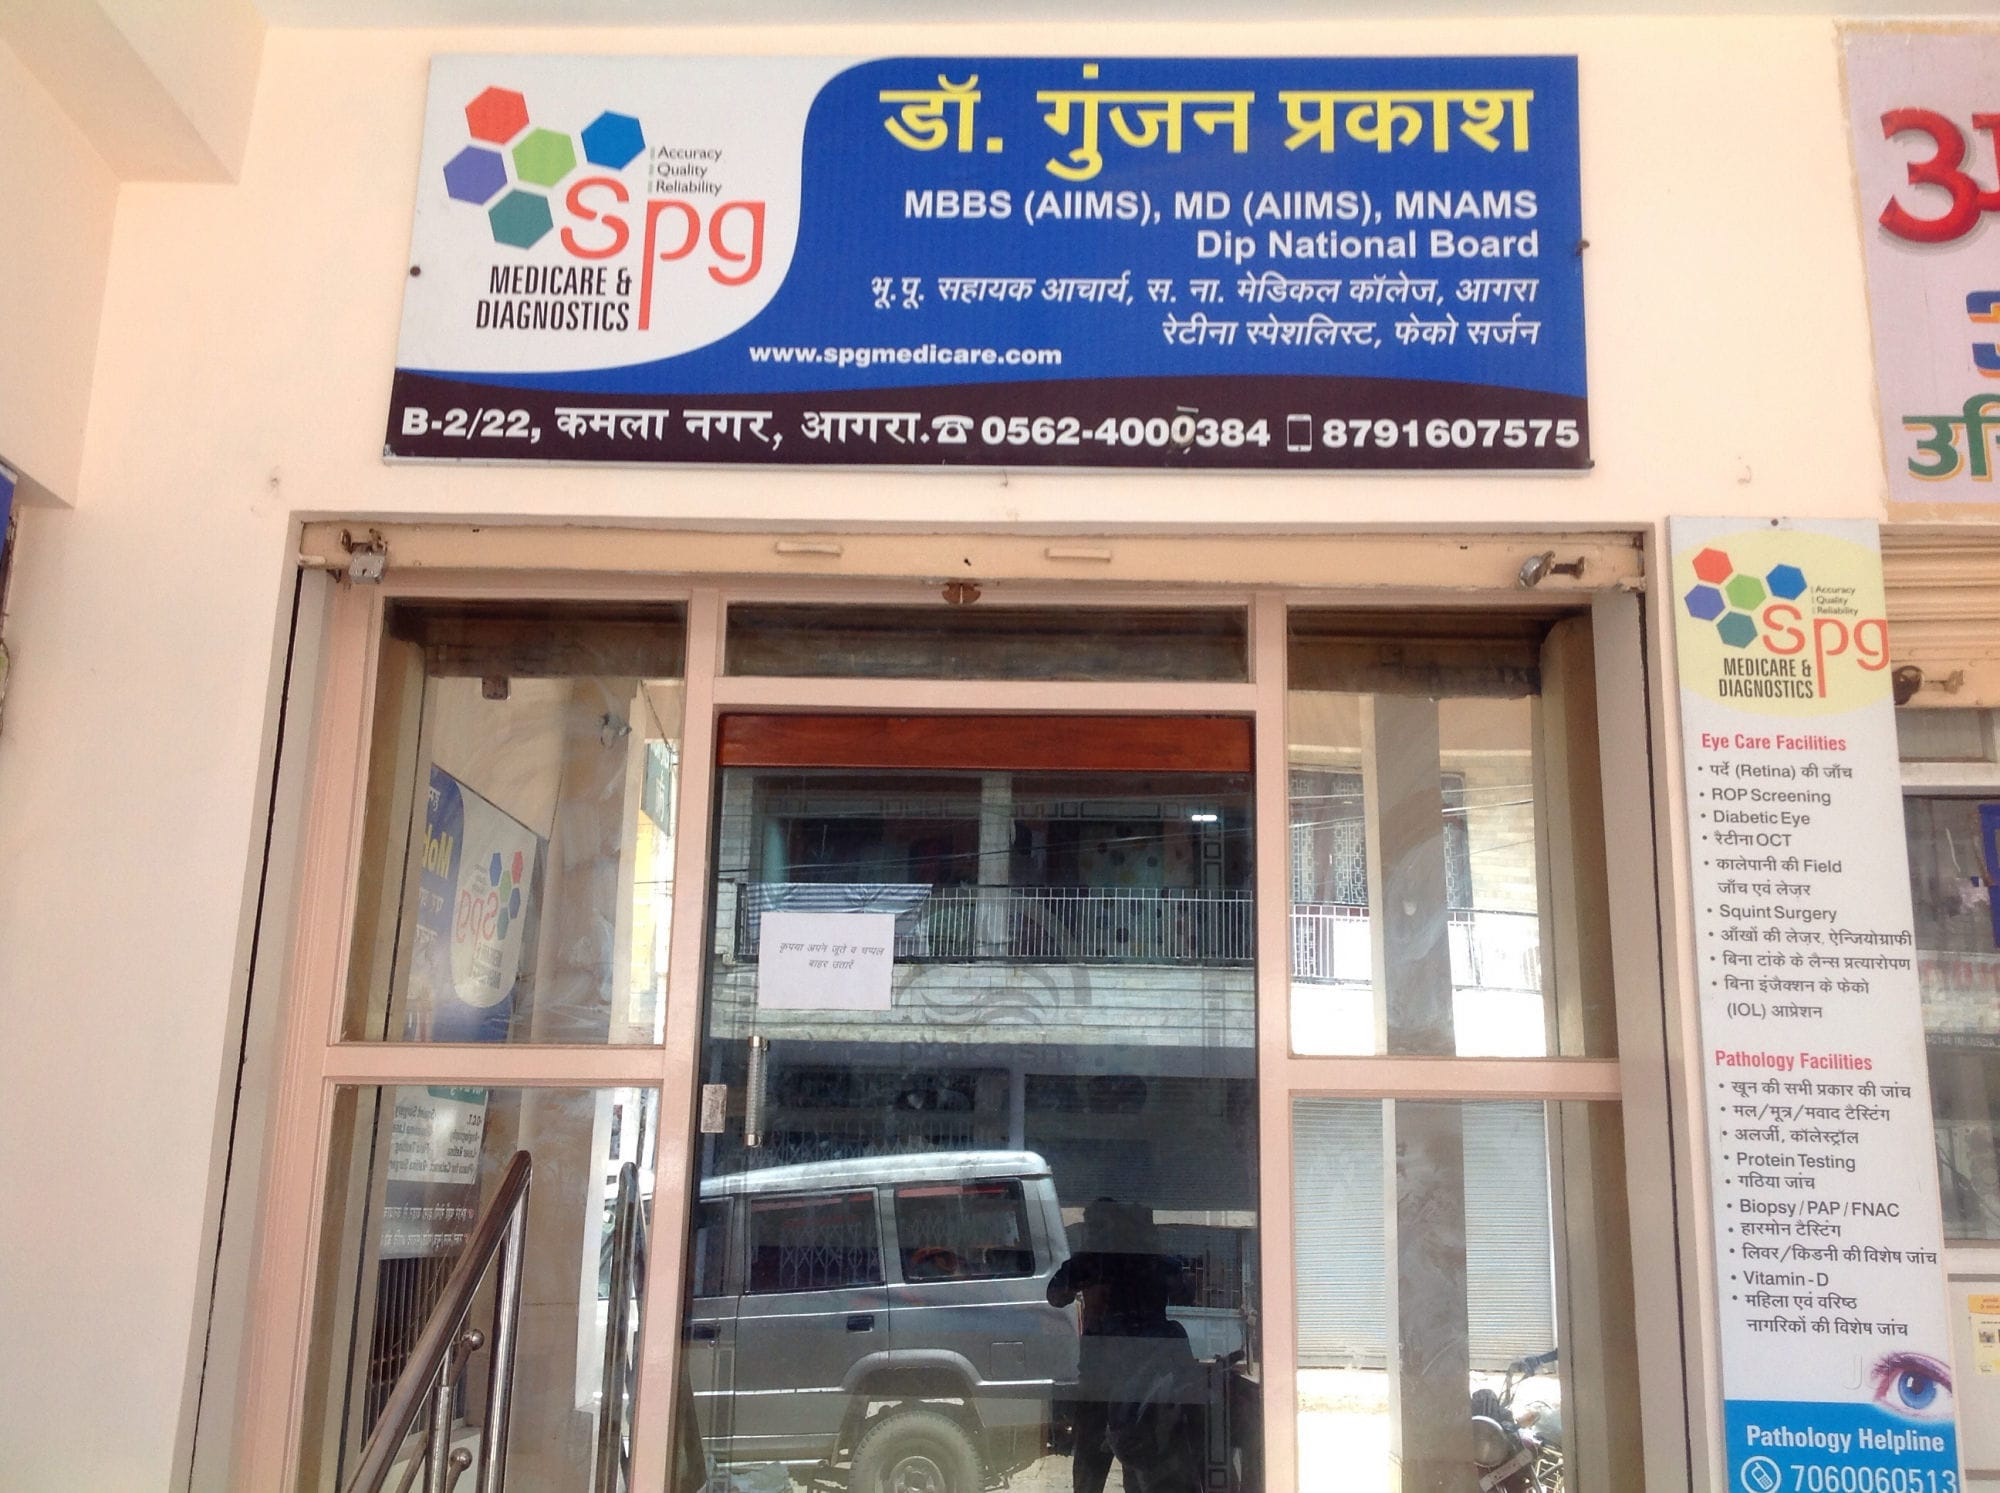 Top 30 Ophthalmologists in Shiraz, Agra - Best Eye